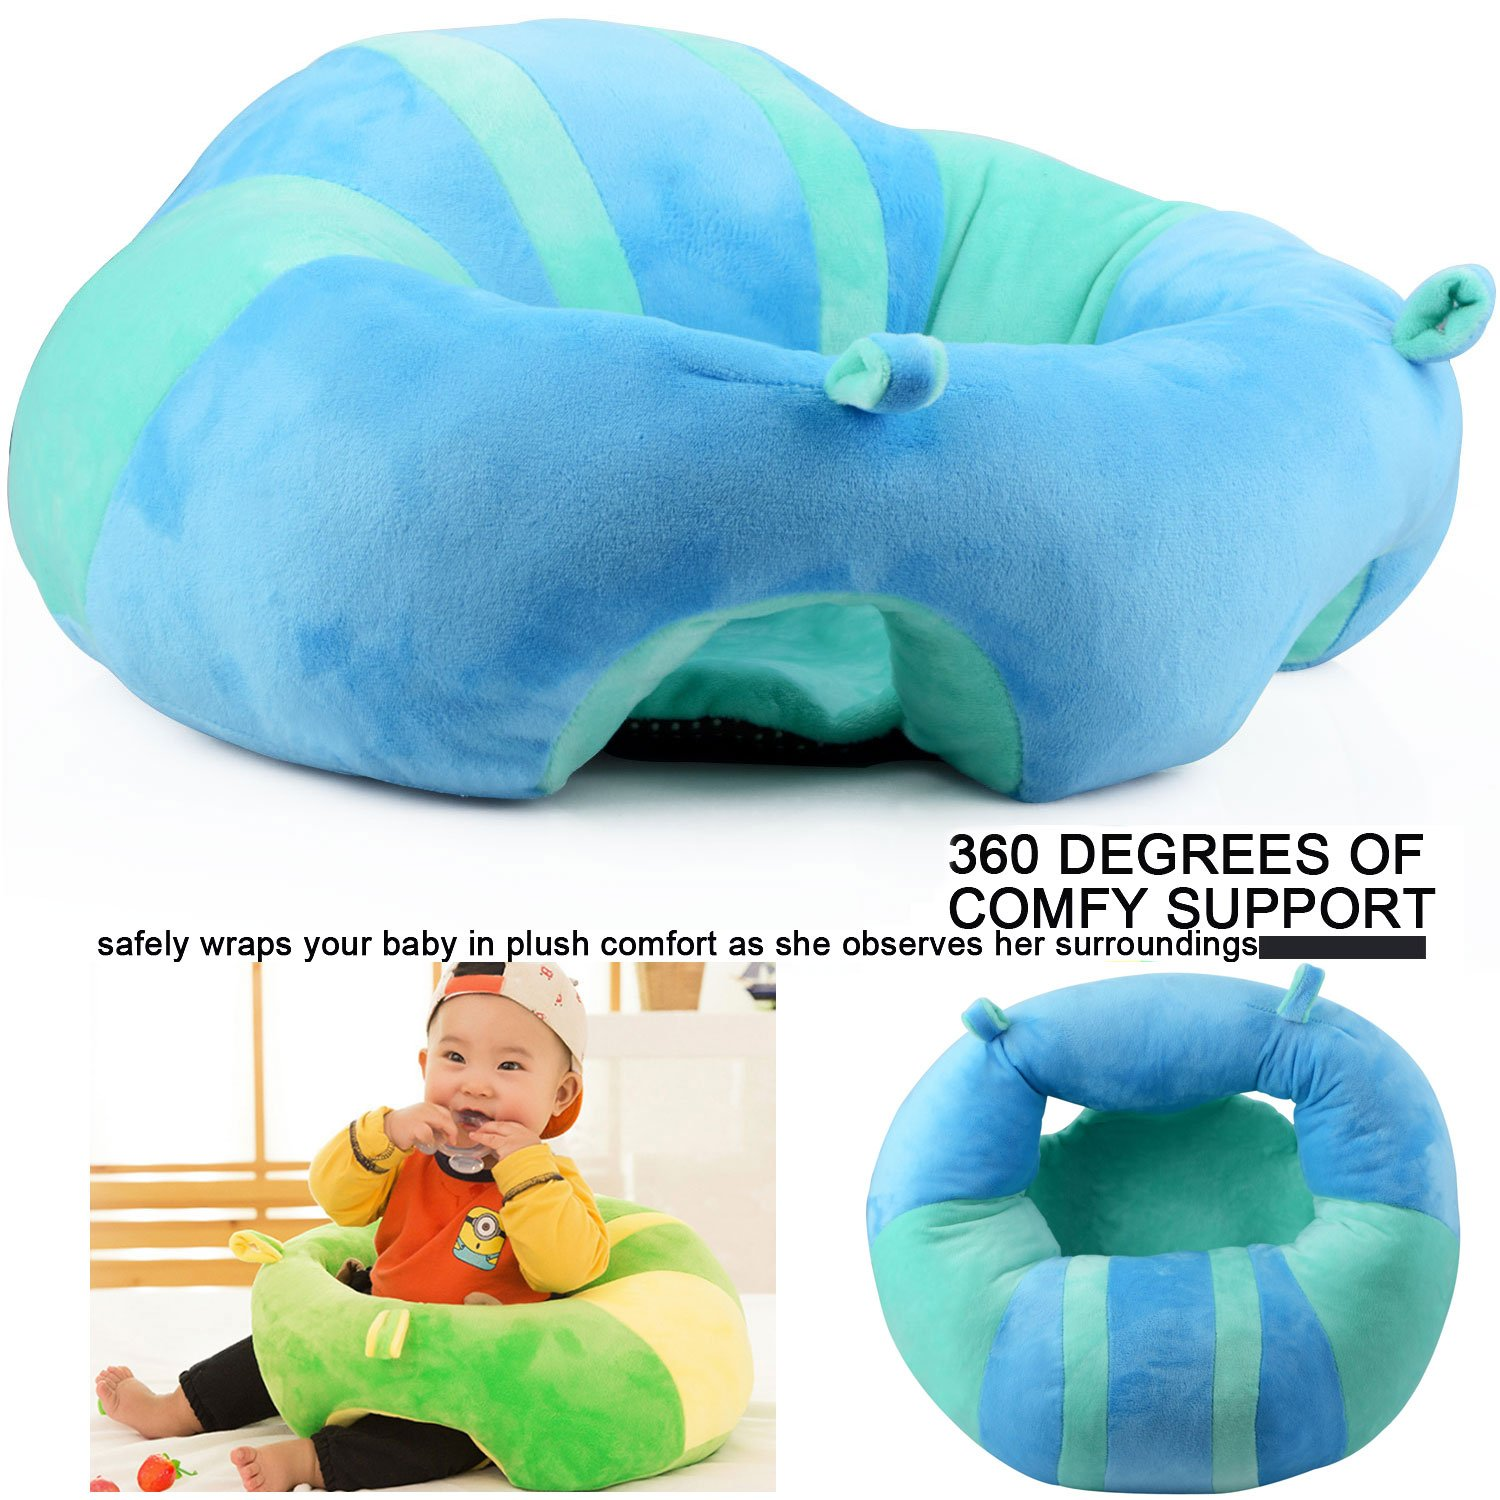 Amazon.com : pinnacleT1 Baby Cartoon Animal Plush Sofa Seat Soft ...